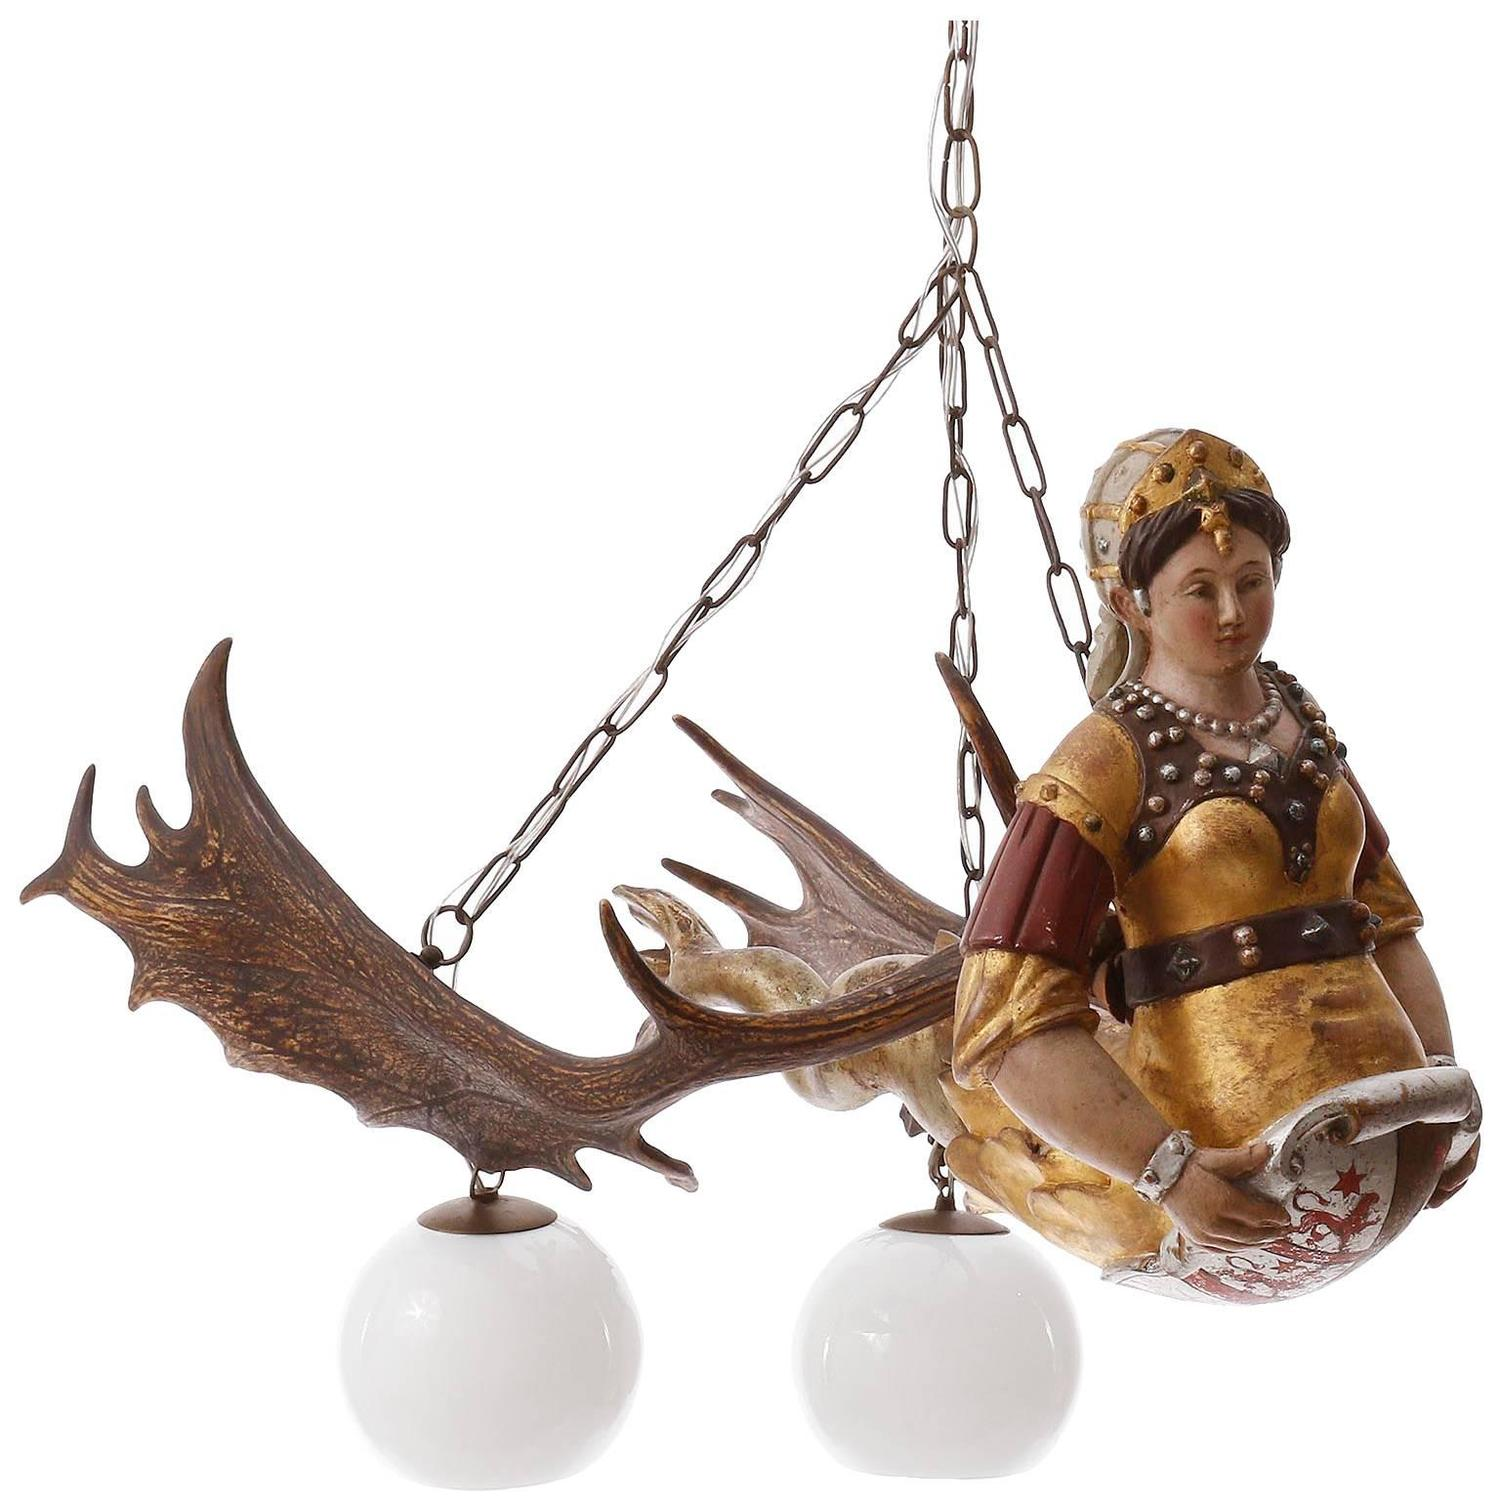 Antique antler chandelier with carved wood figurine lusterweibchen antique antler chandelier with carved wood figurine lusterweibchen for sale at 1stdibs aloadofball Image collections